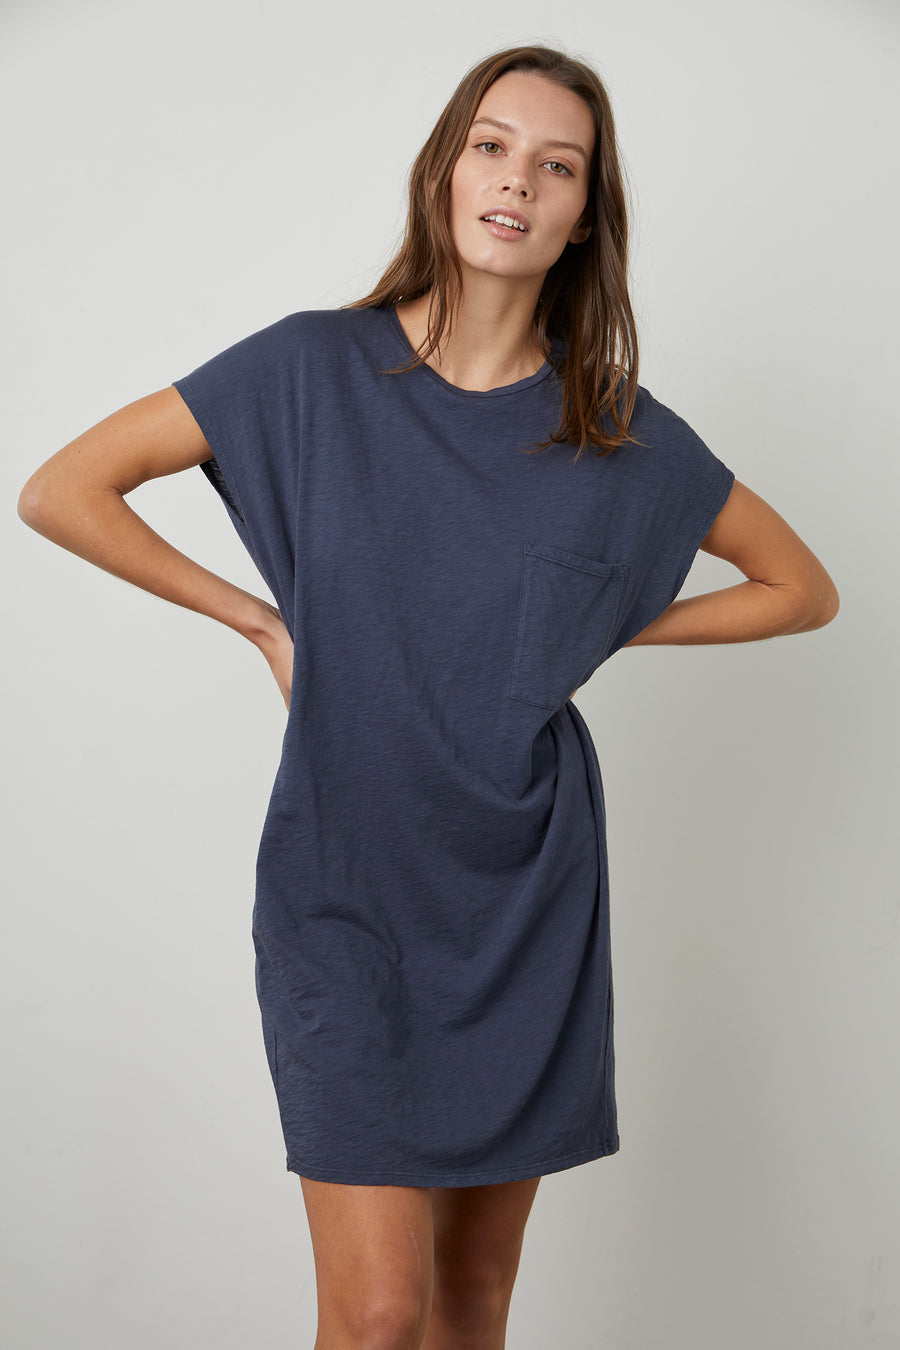 ANNIE T-SHIRT DRESS